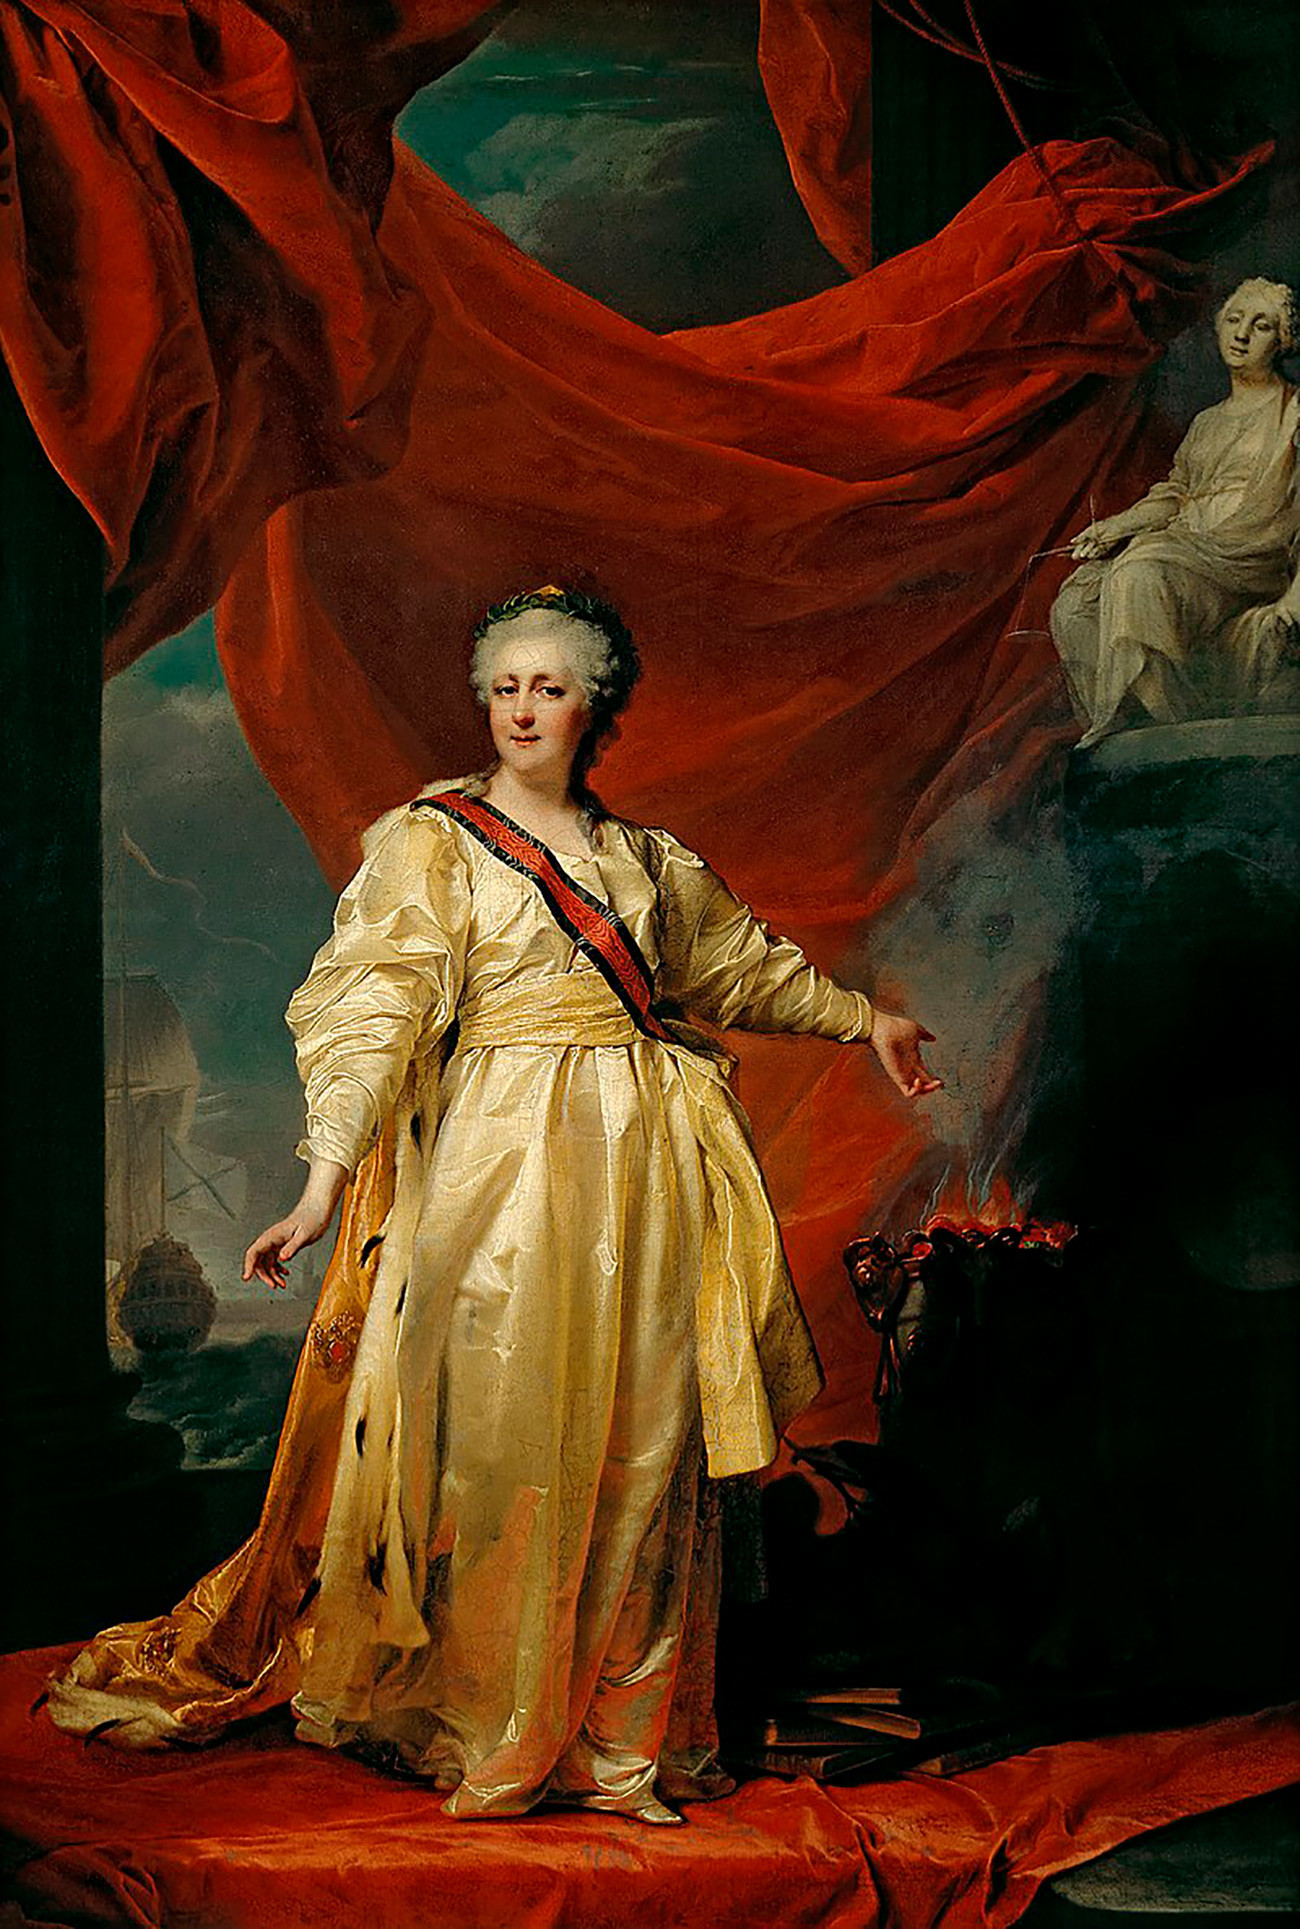 Catherine the Great by Dmitry Levitskiy